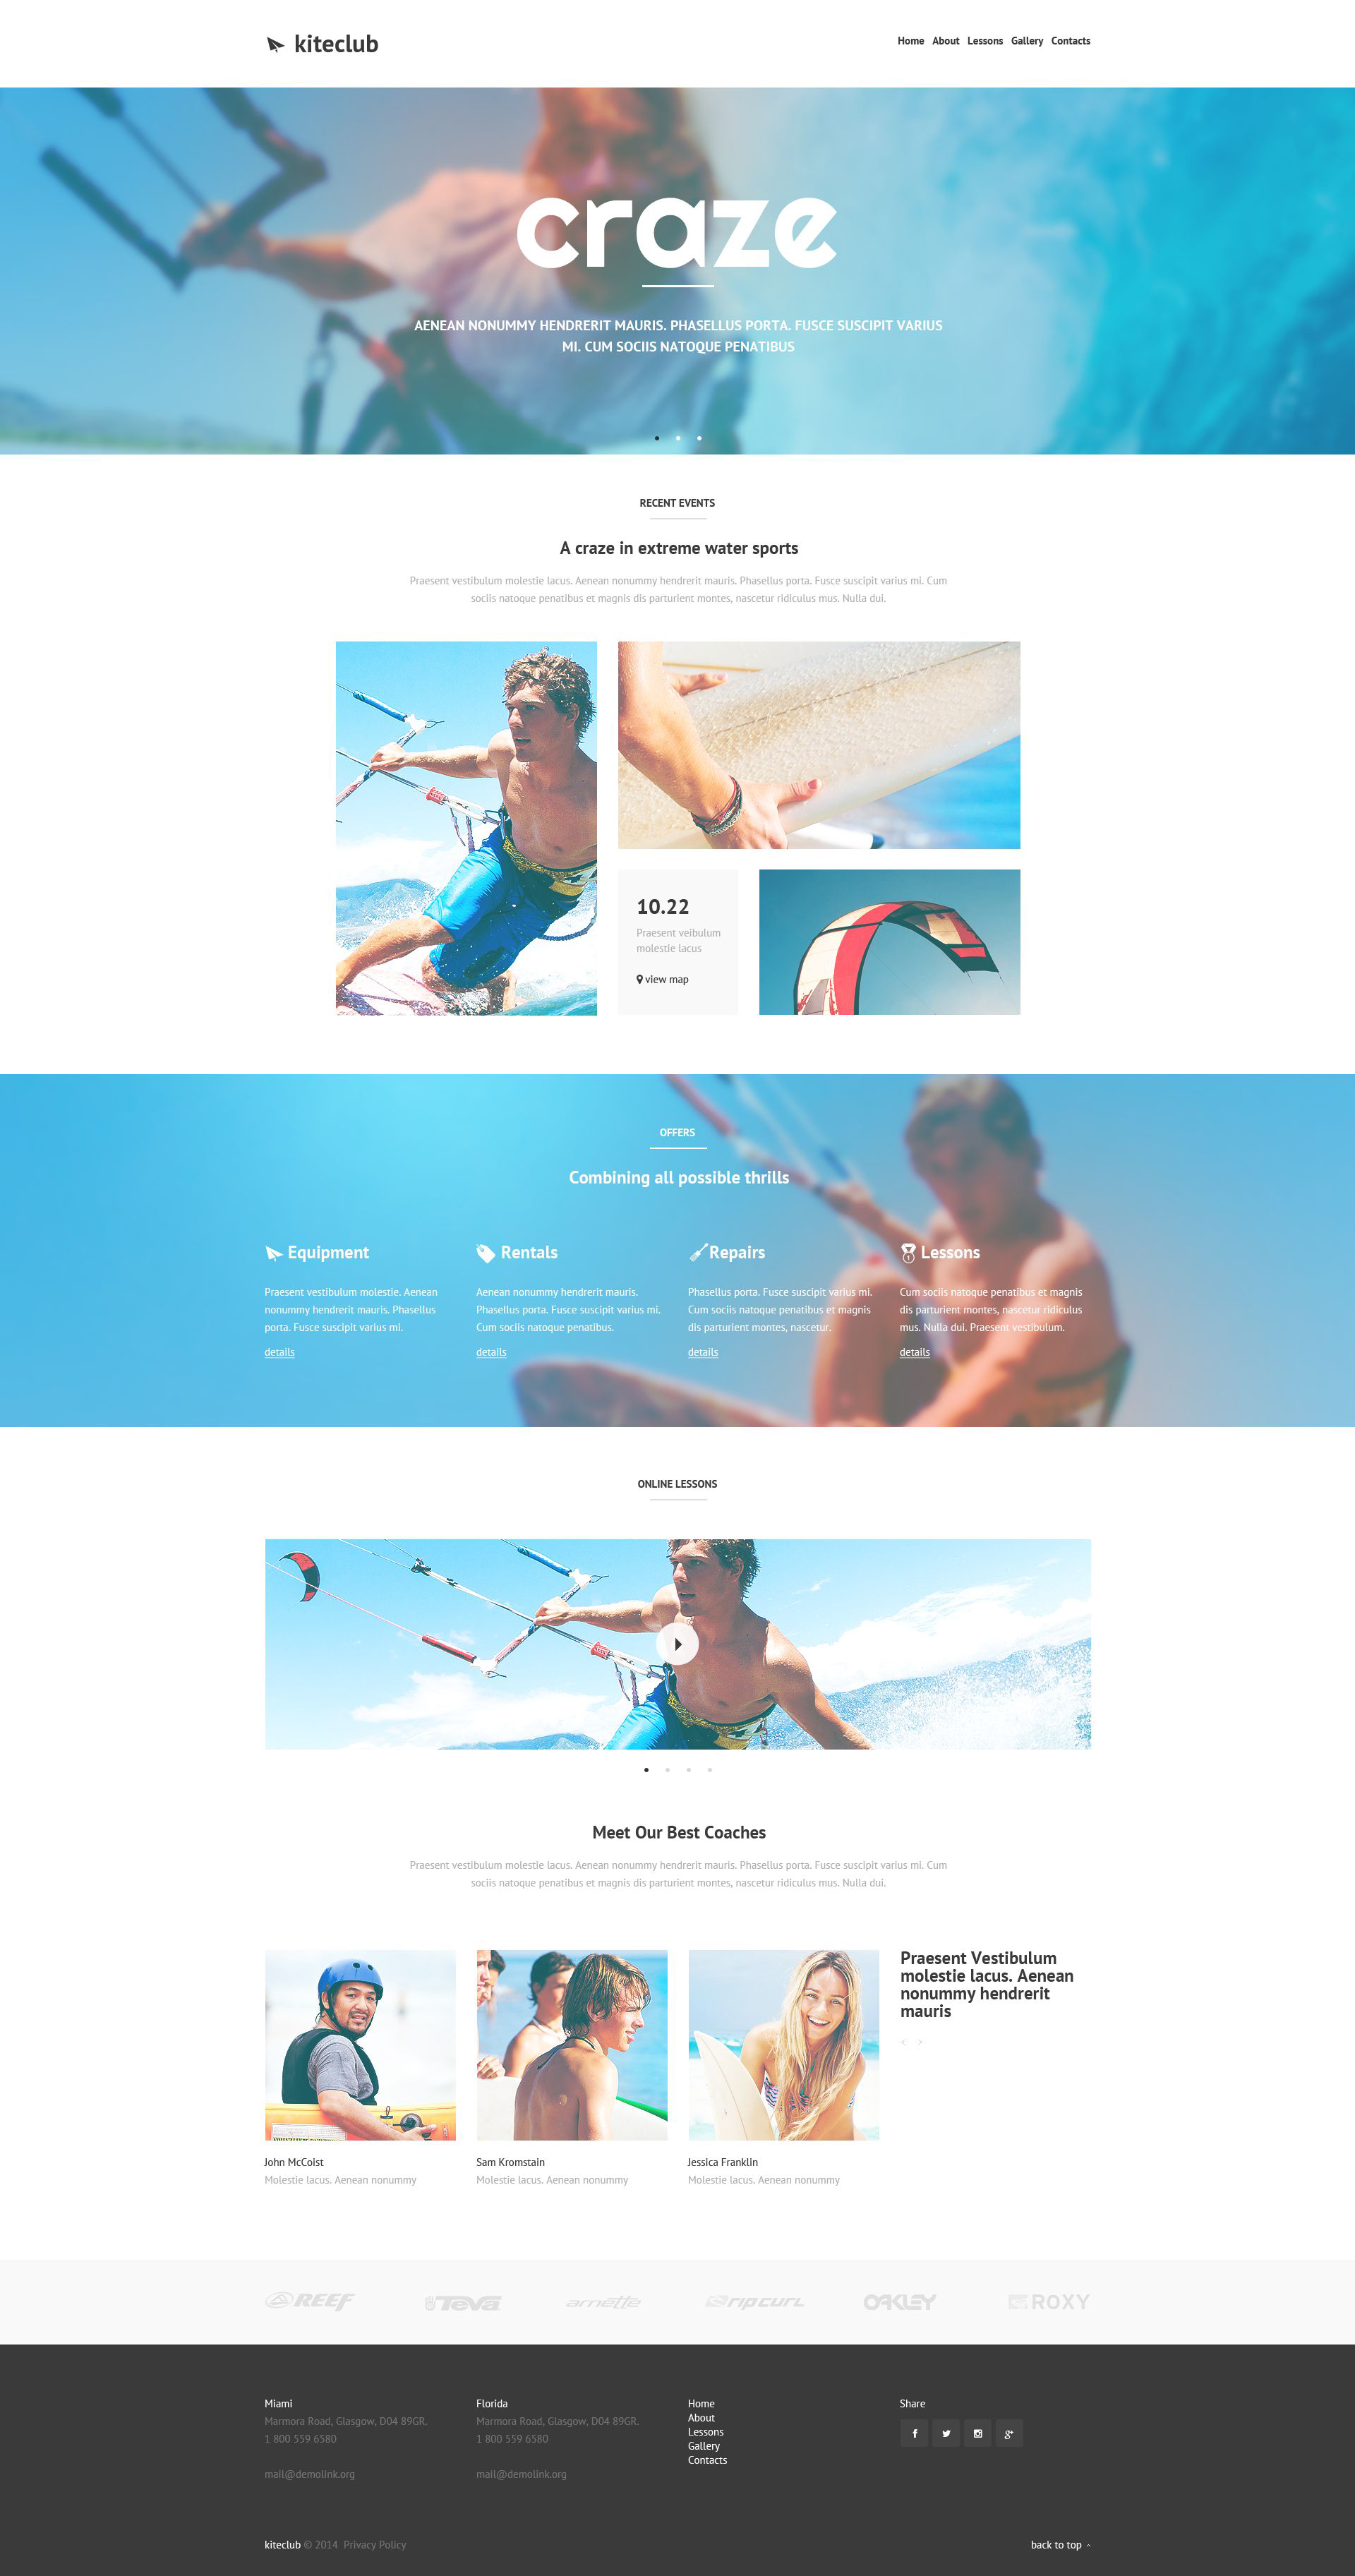 The Kite Club Bootstrap Design 53100, one of the best website templates of its kind (sport, most popular), also known as kite club website template, kitesurfing website template, sport website template, entertainment website template, kiteboarding website template, kitesurfing website template, extreme club website template, training website template, trainers website template, boards website template, equipment website template, team website template, offers website template, services website template, recreation website template, gallery website template, shop website template, products website template, guide website template, support and related with kite club, kitesurfing, sport, entertainment, kiteboarding, kitesurfing, extreme club, training, trainers, boards, equipment, team, offers, services, recreation, gallery, shop, products, guide, support, etc.